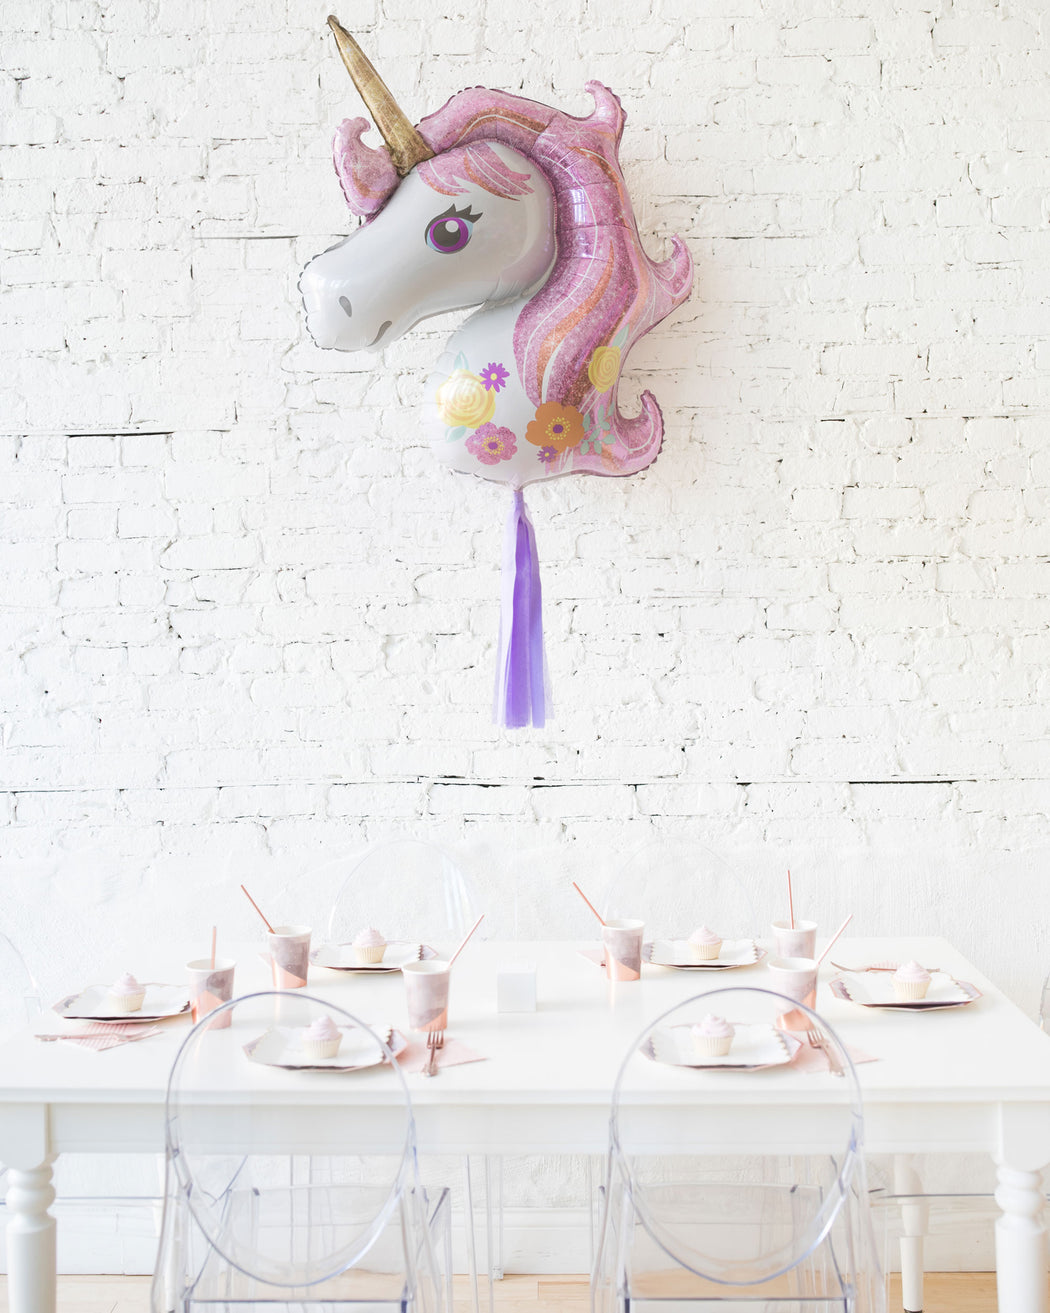 29in Unicorn Foil Balloon and Lavender Skirt Centerpiece